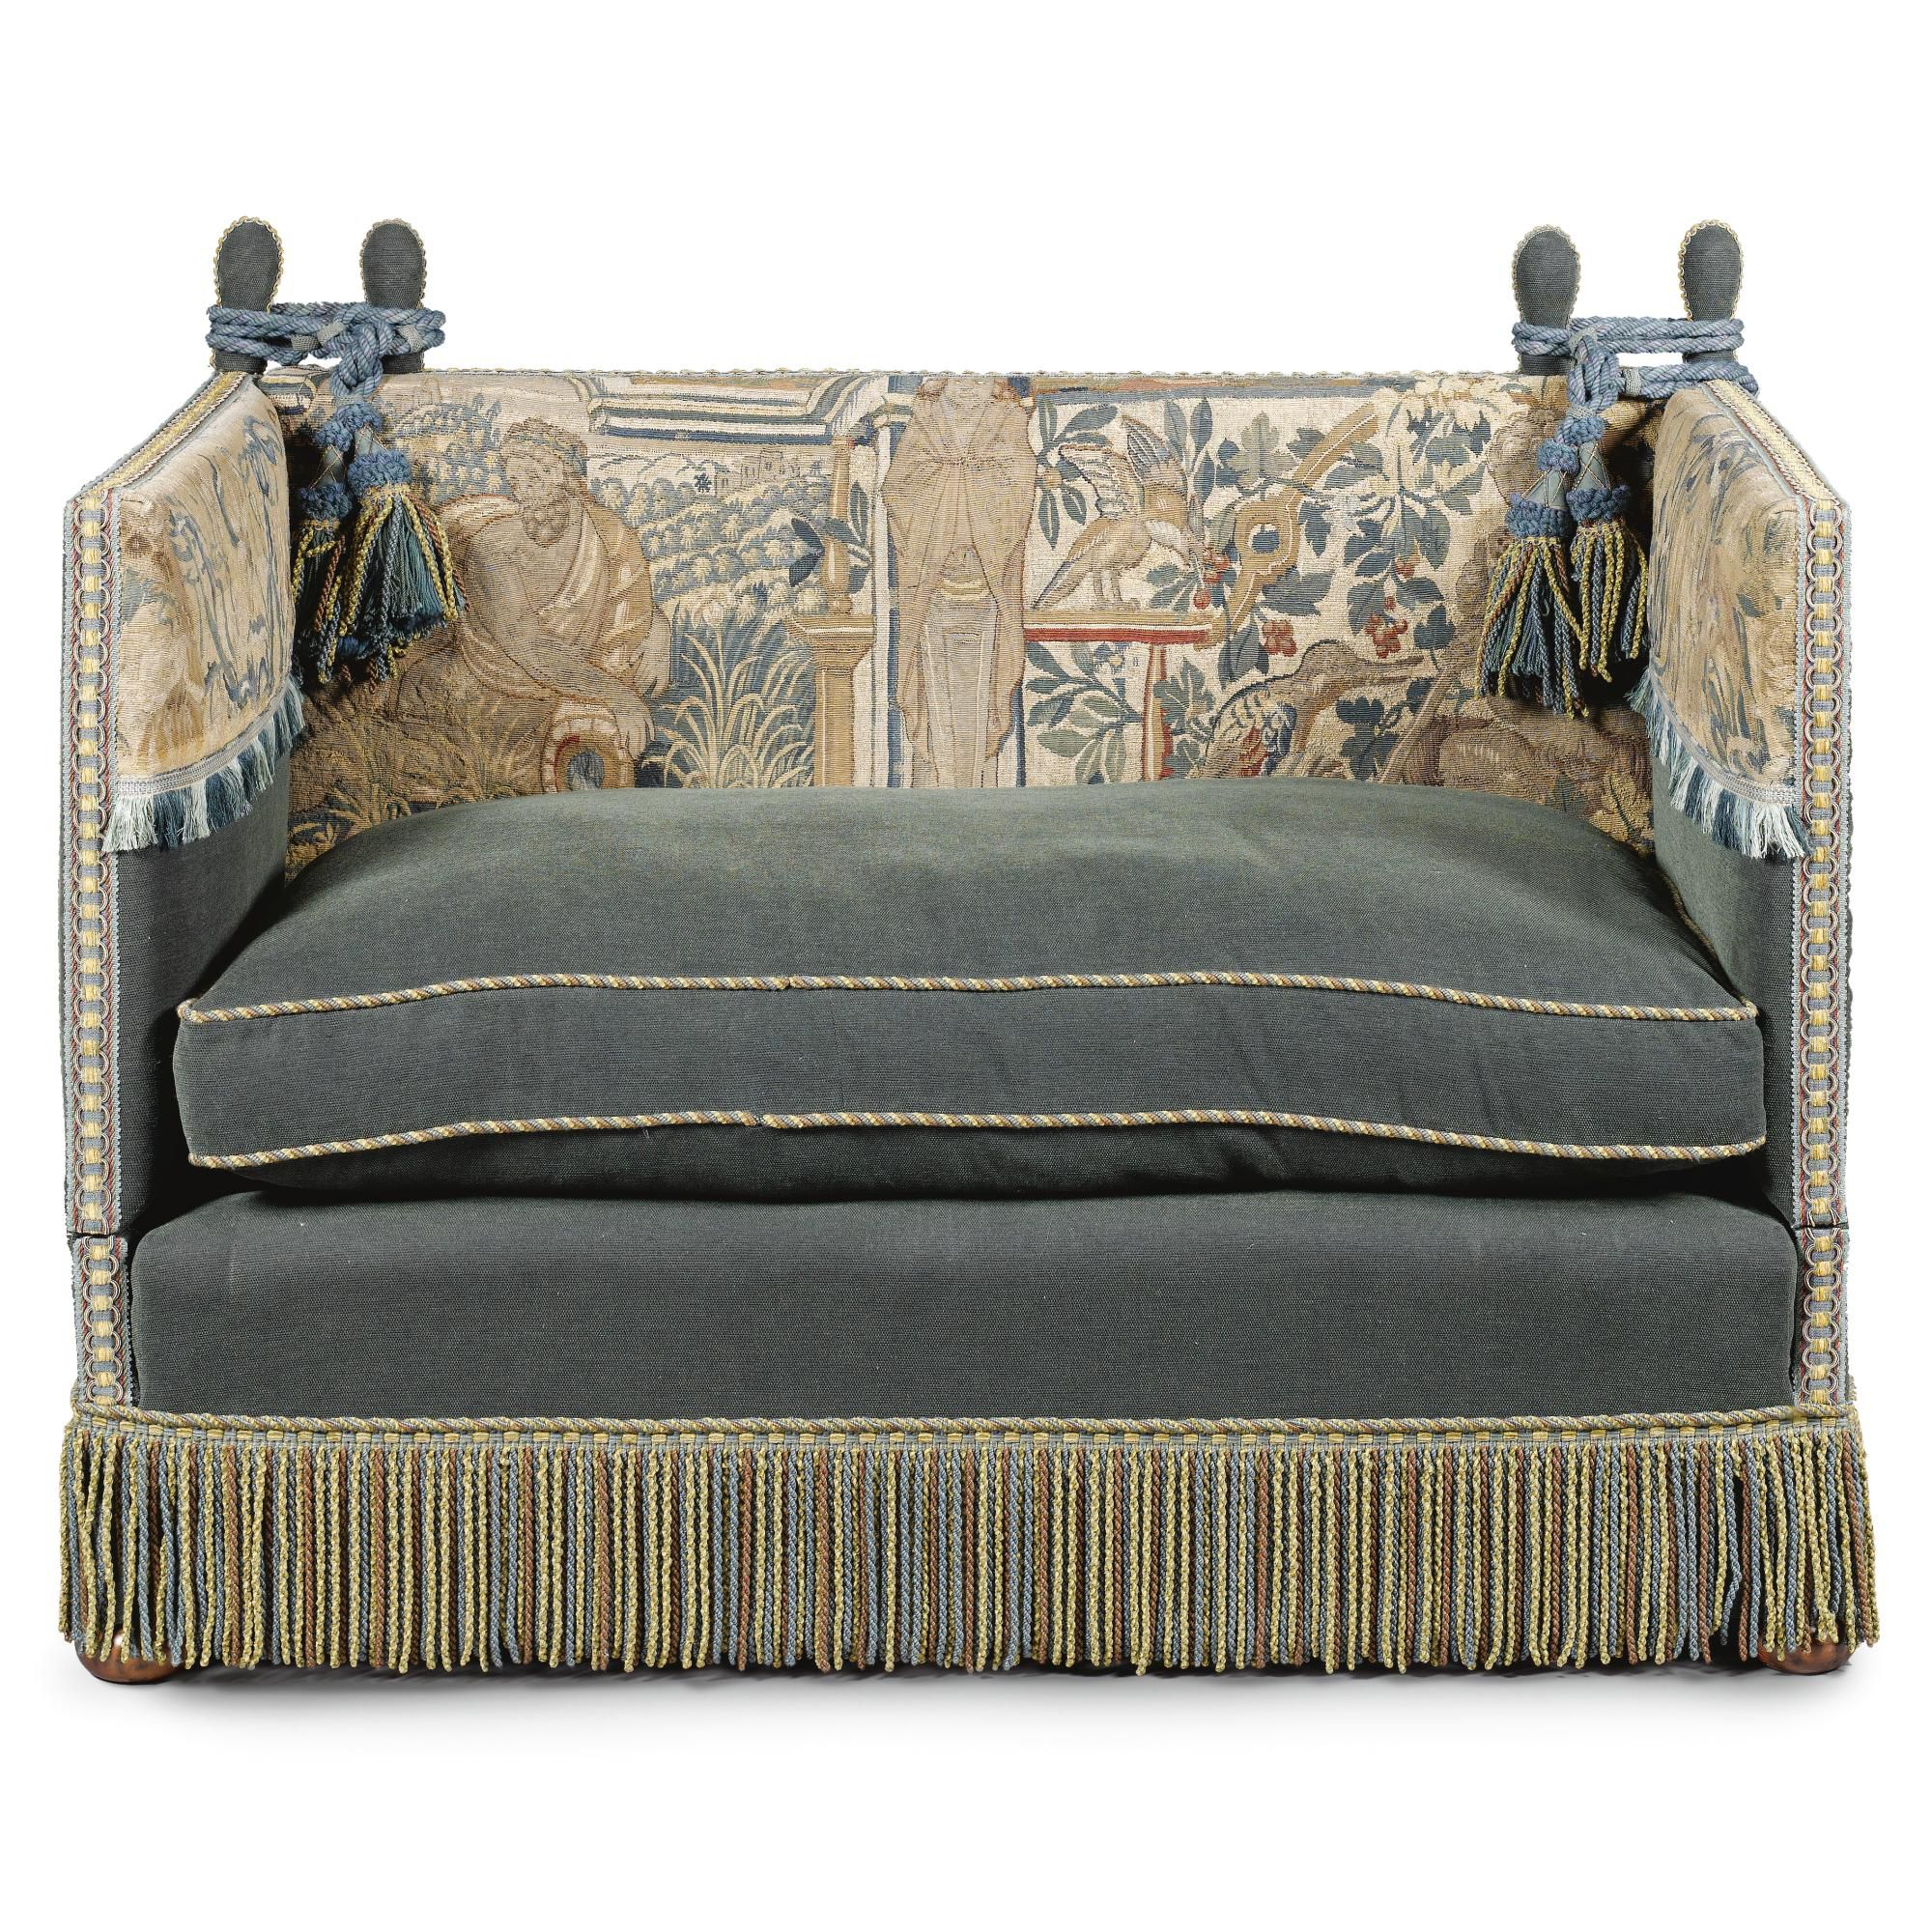 DXV knole sofa rope and tassels Furniture